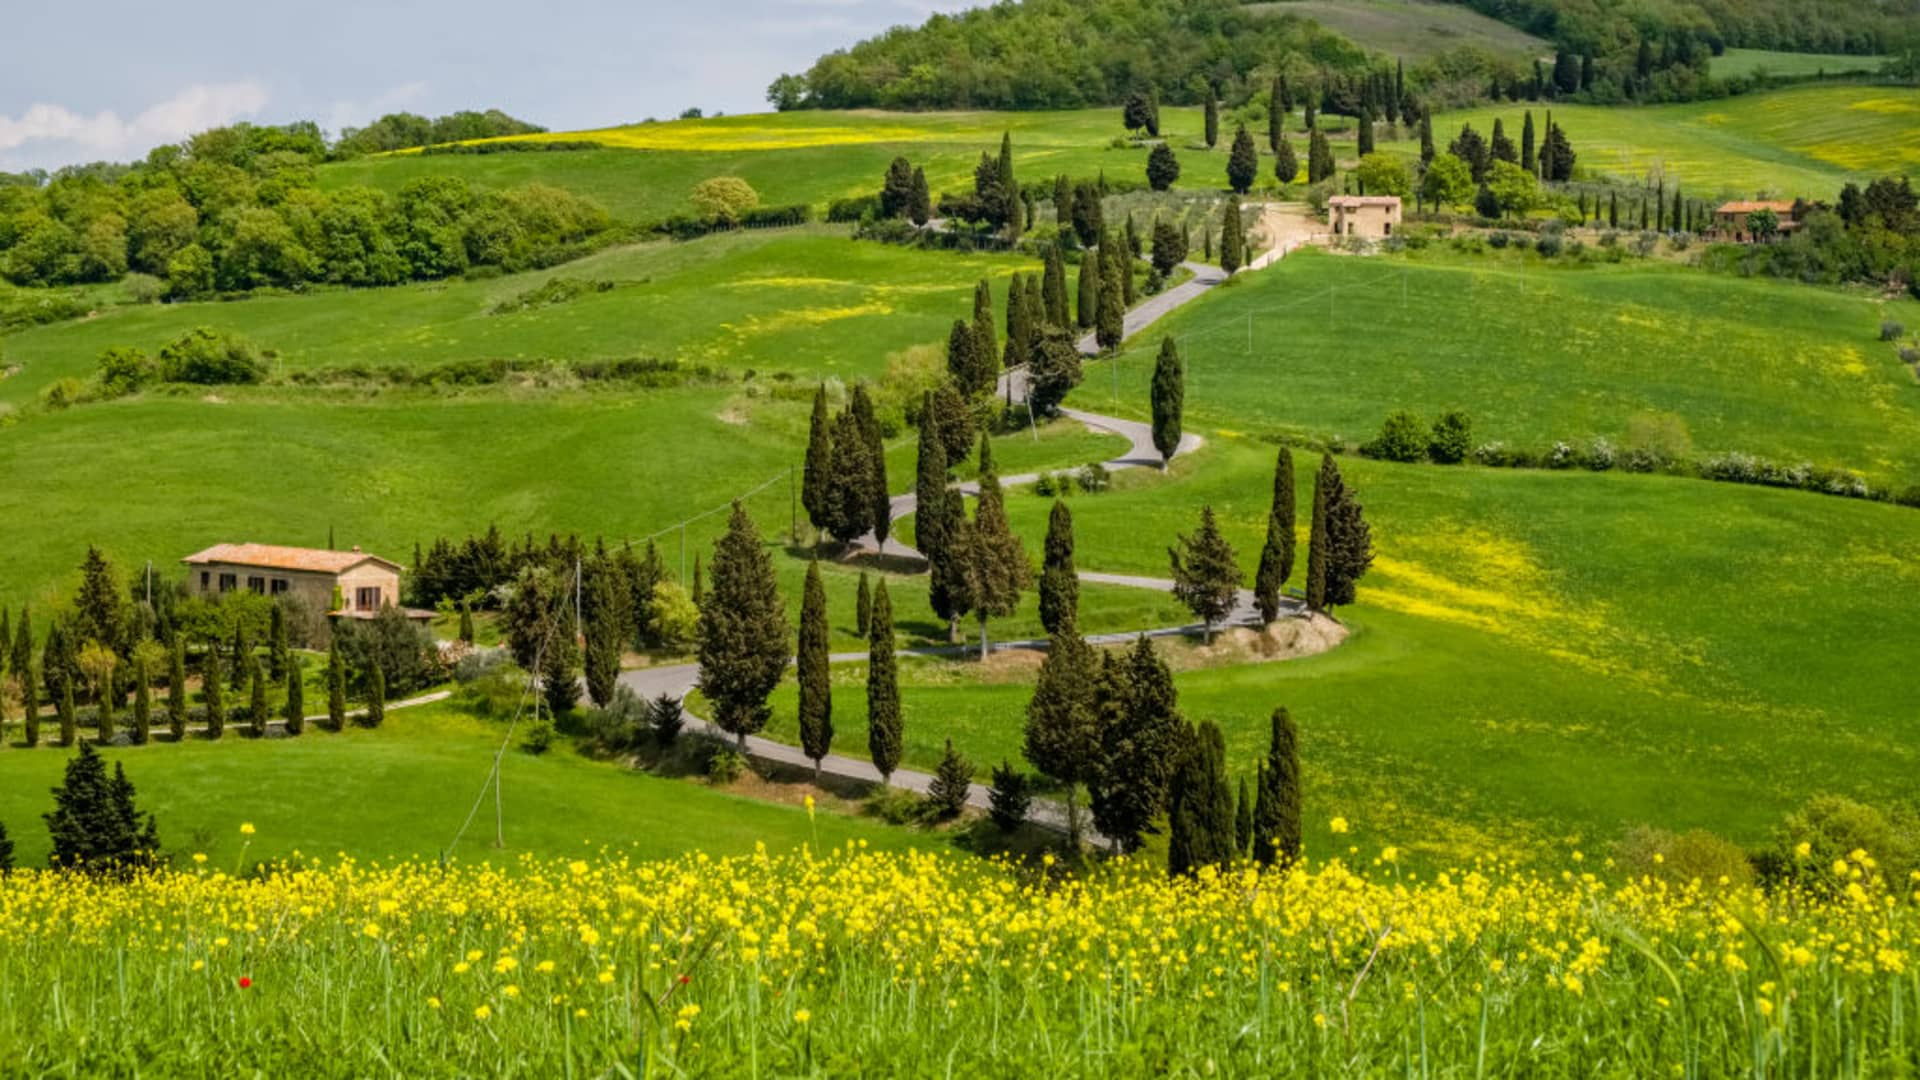 With 55 in all, Italy is tied with China for having the most UNESCO World Heritage Sites, though not all are crawling with tourists, such as the rural landscape of Tuscany's Val d'Orcia.